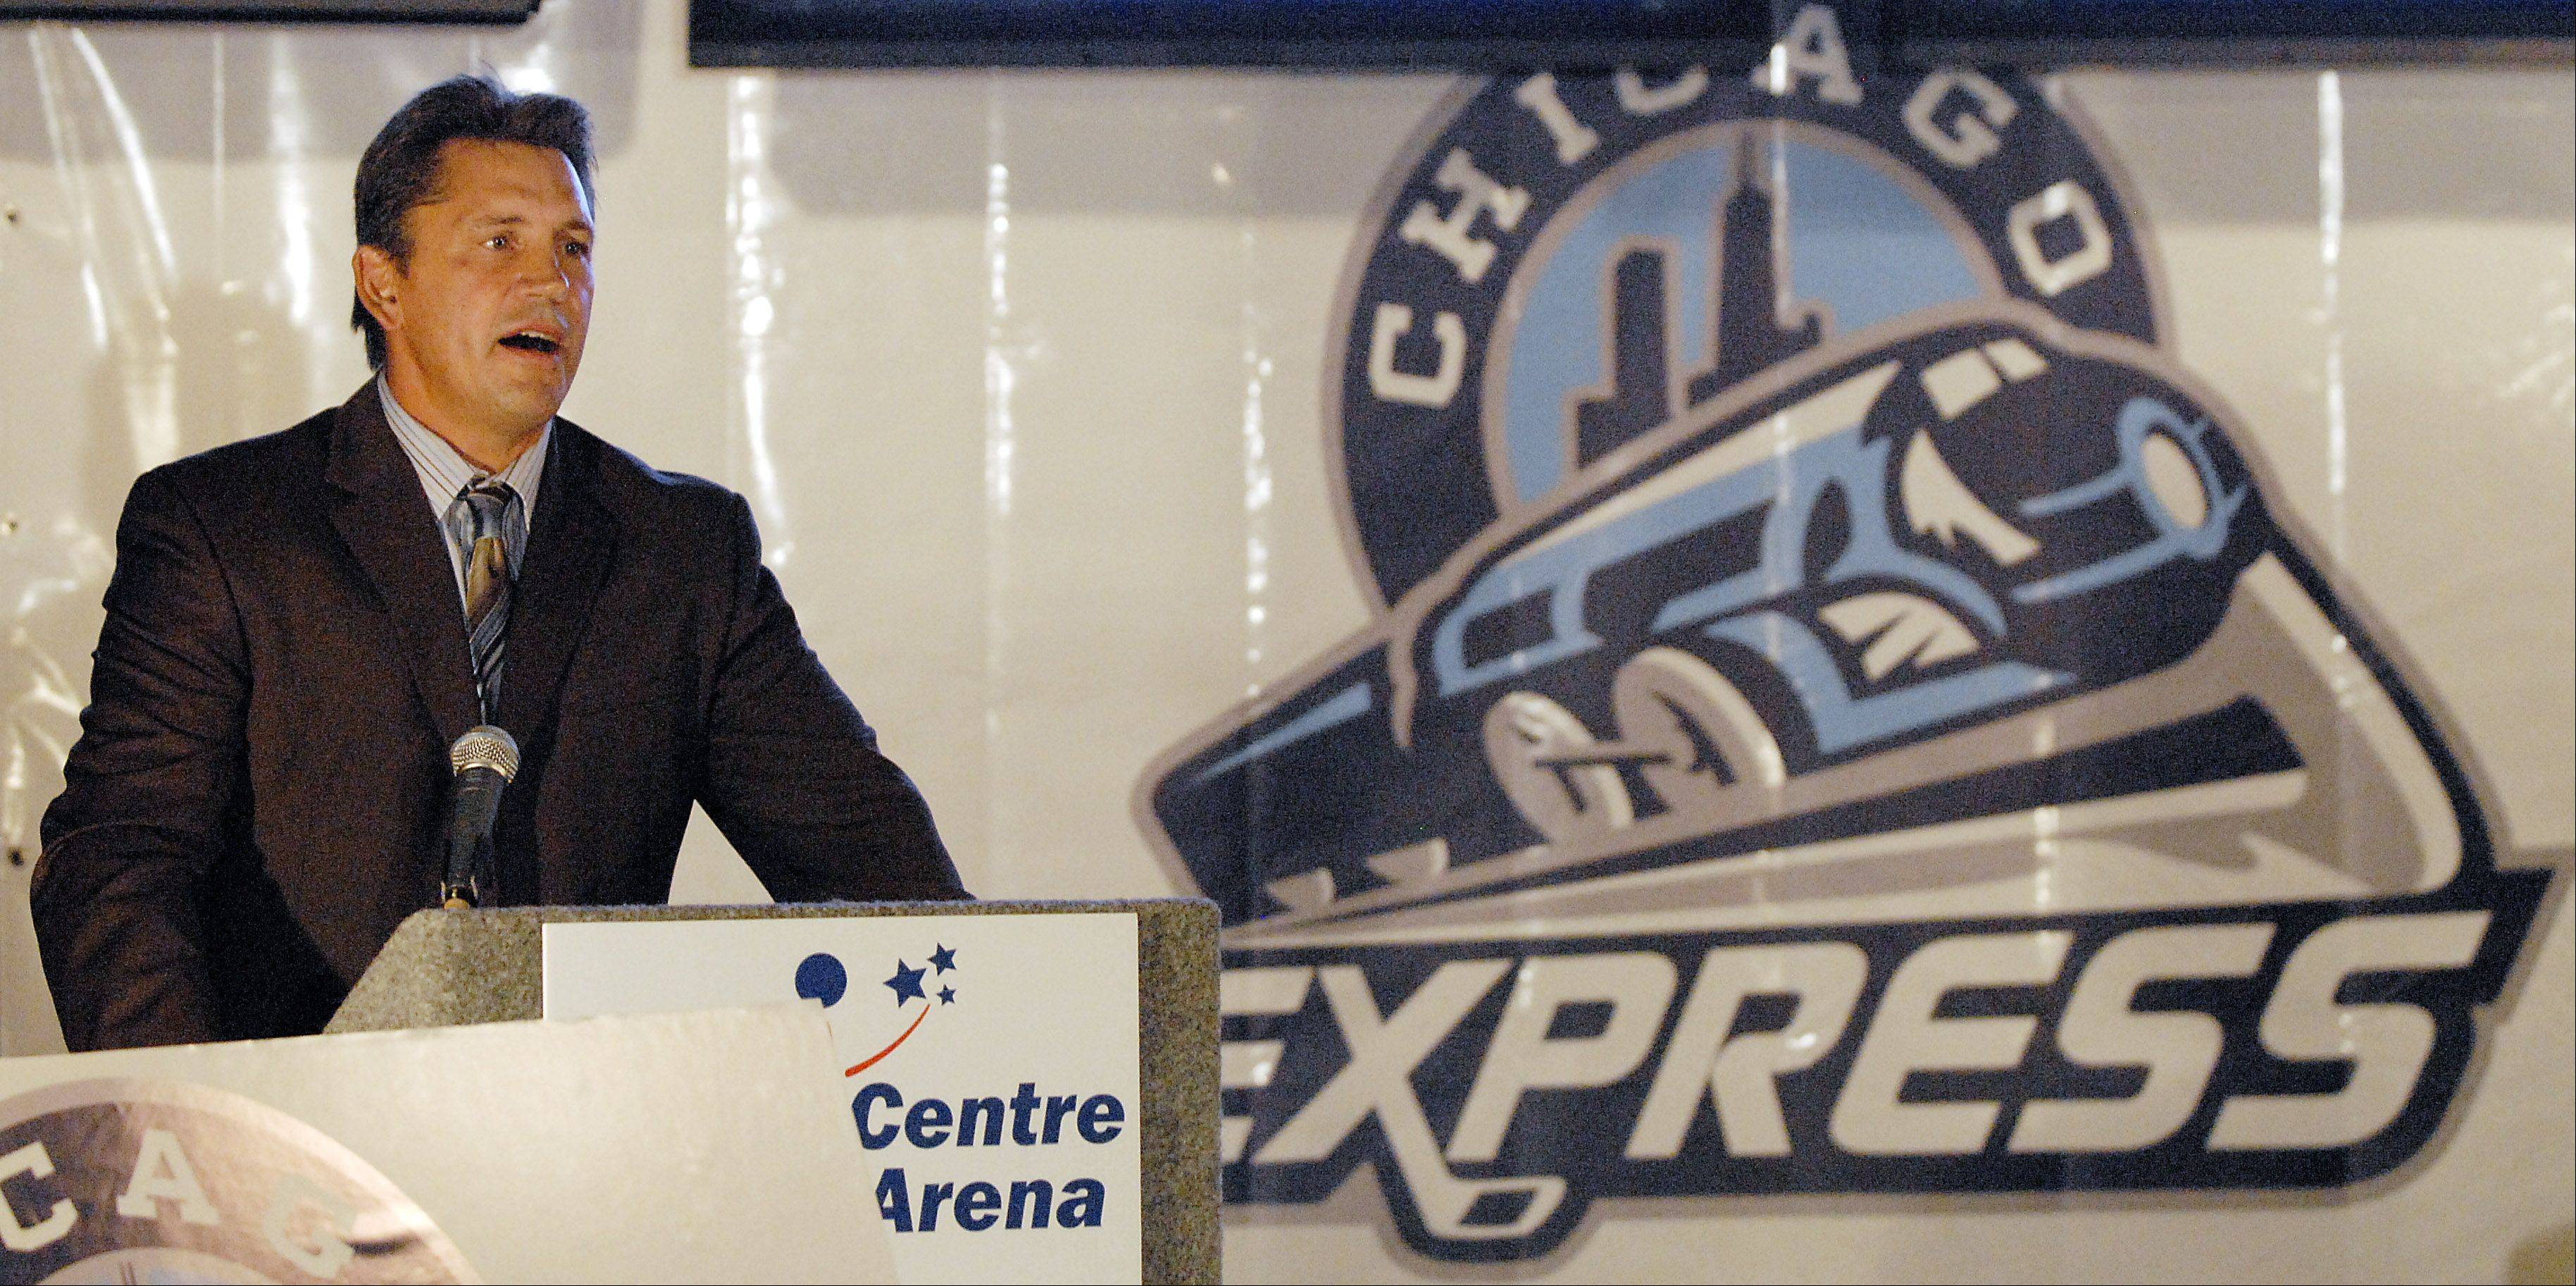 Head Coach Steve Martinson stands next to the team logo as the Chicago Express name is unveiled at a news conference in October 2010 at the Sears Centre in Hoffman Estates.